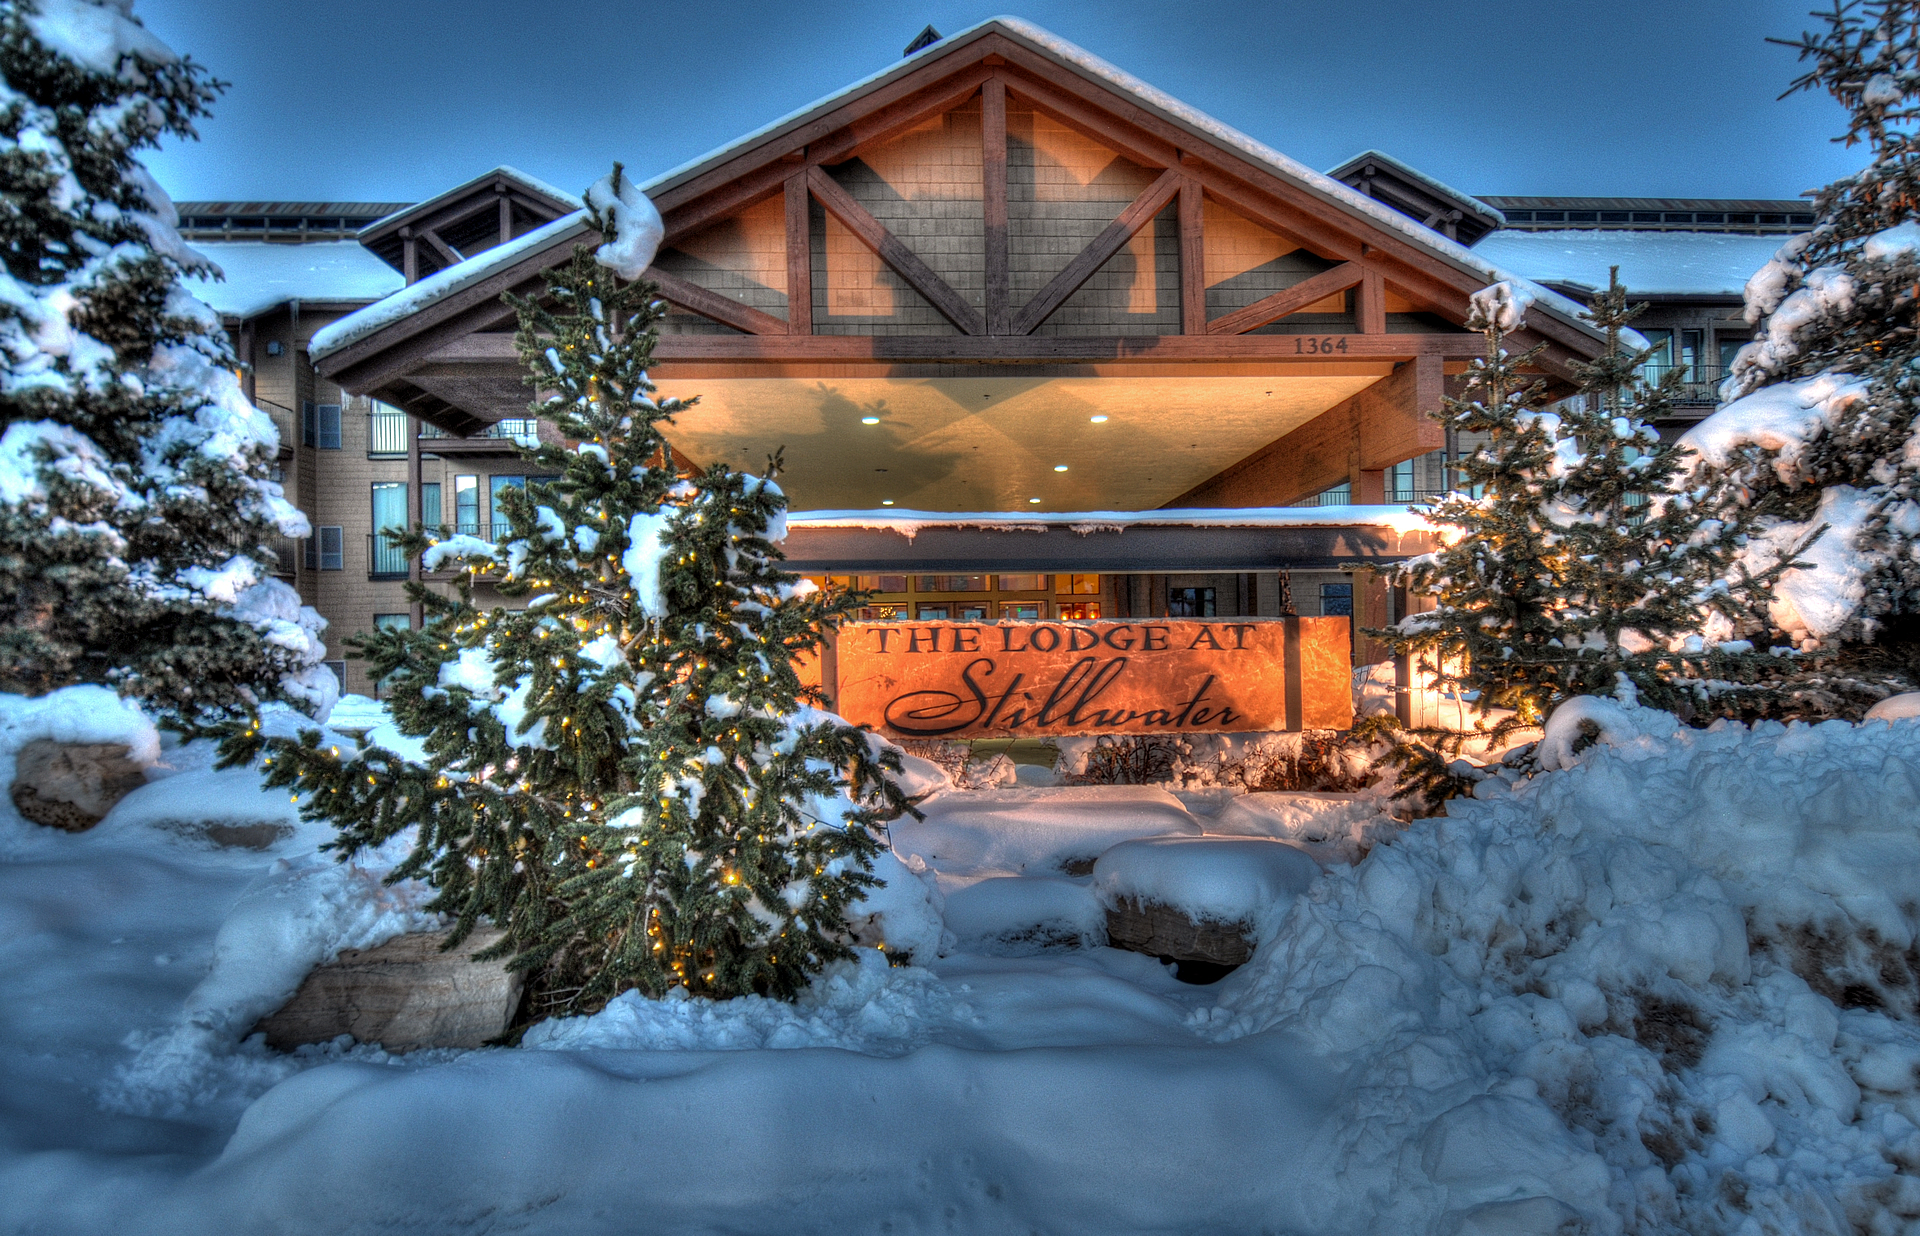 The Lodge at Stillwater